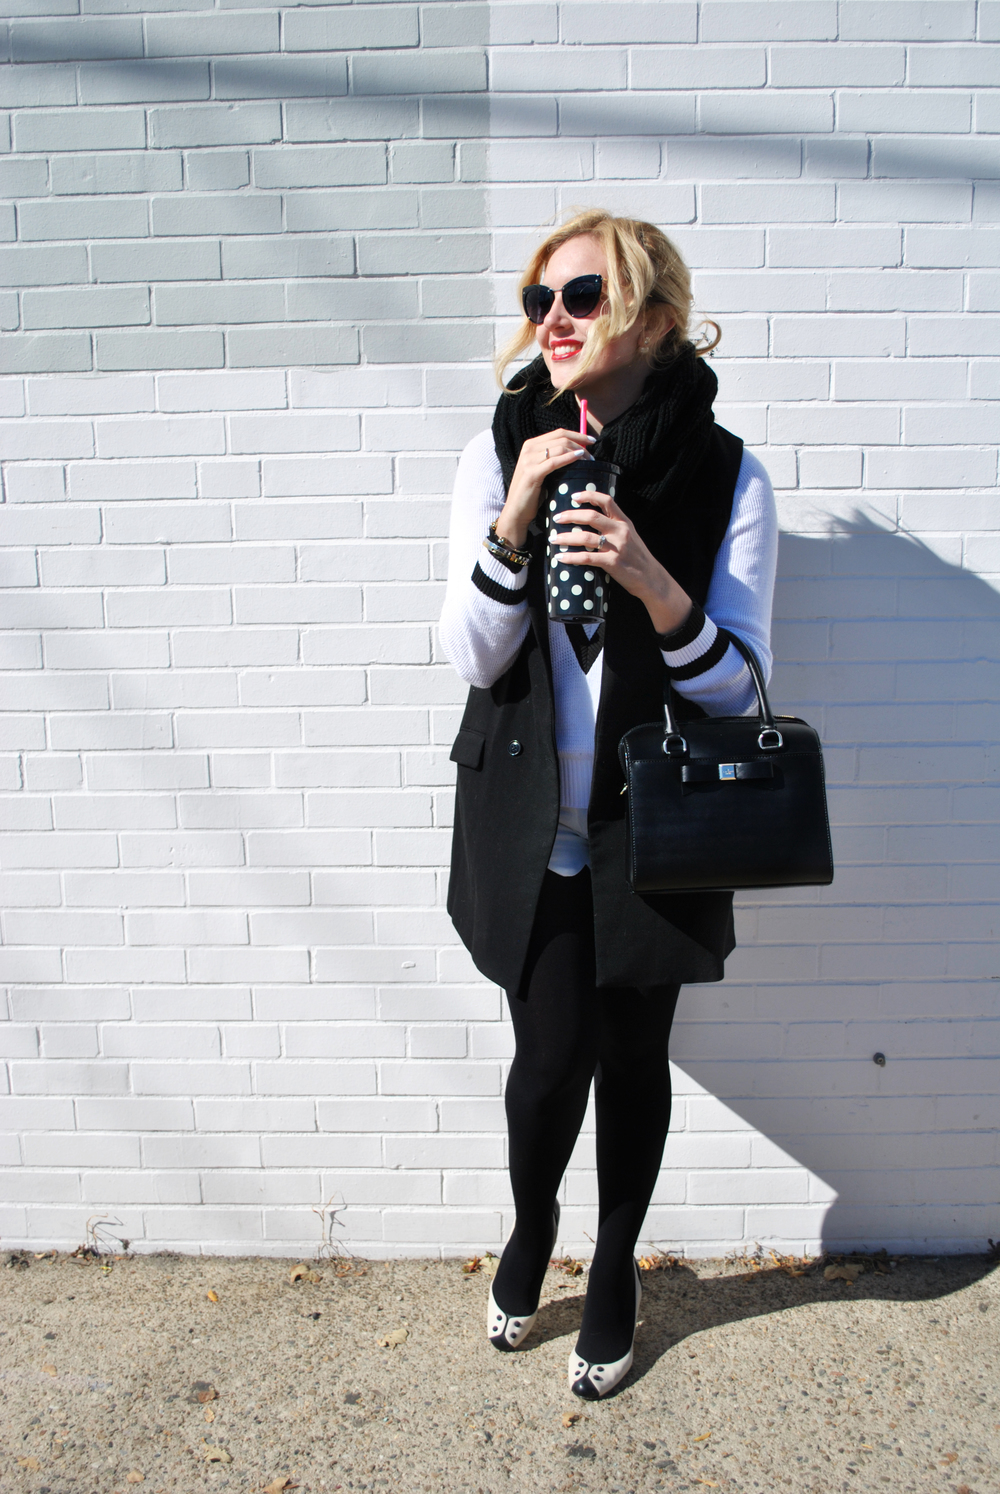 thoughtfulwish | kate spade // kate spade muse // fashion muse // black and white outfit // fall fashion // indian summer outfit // fashion blogger // boston fashion blogger